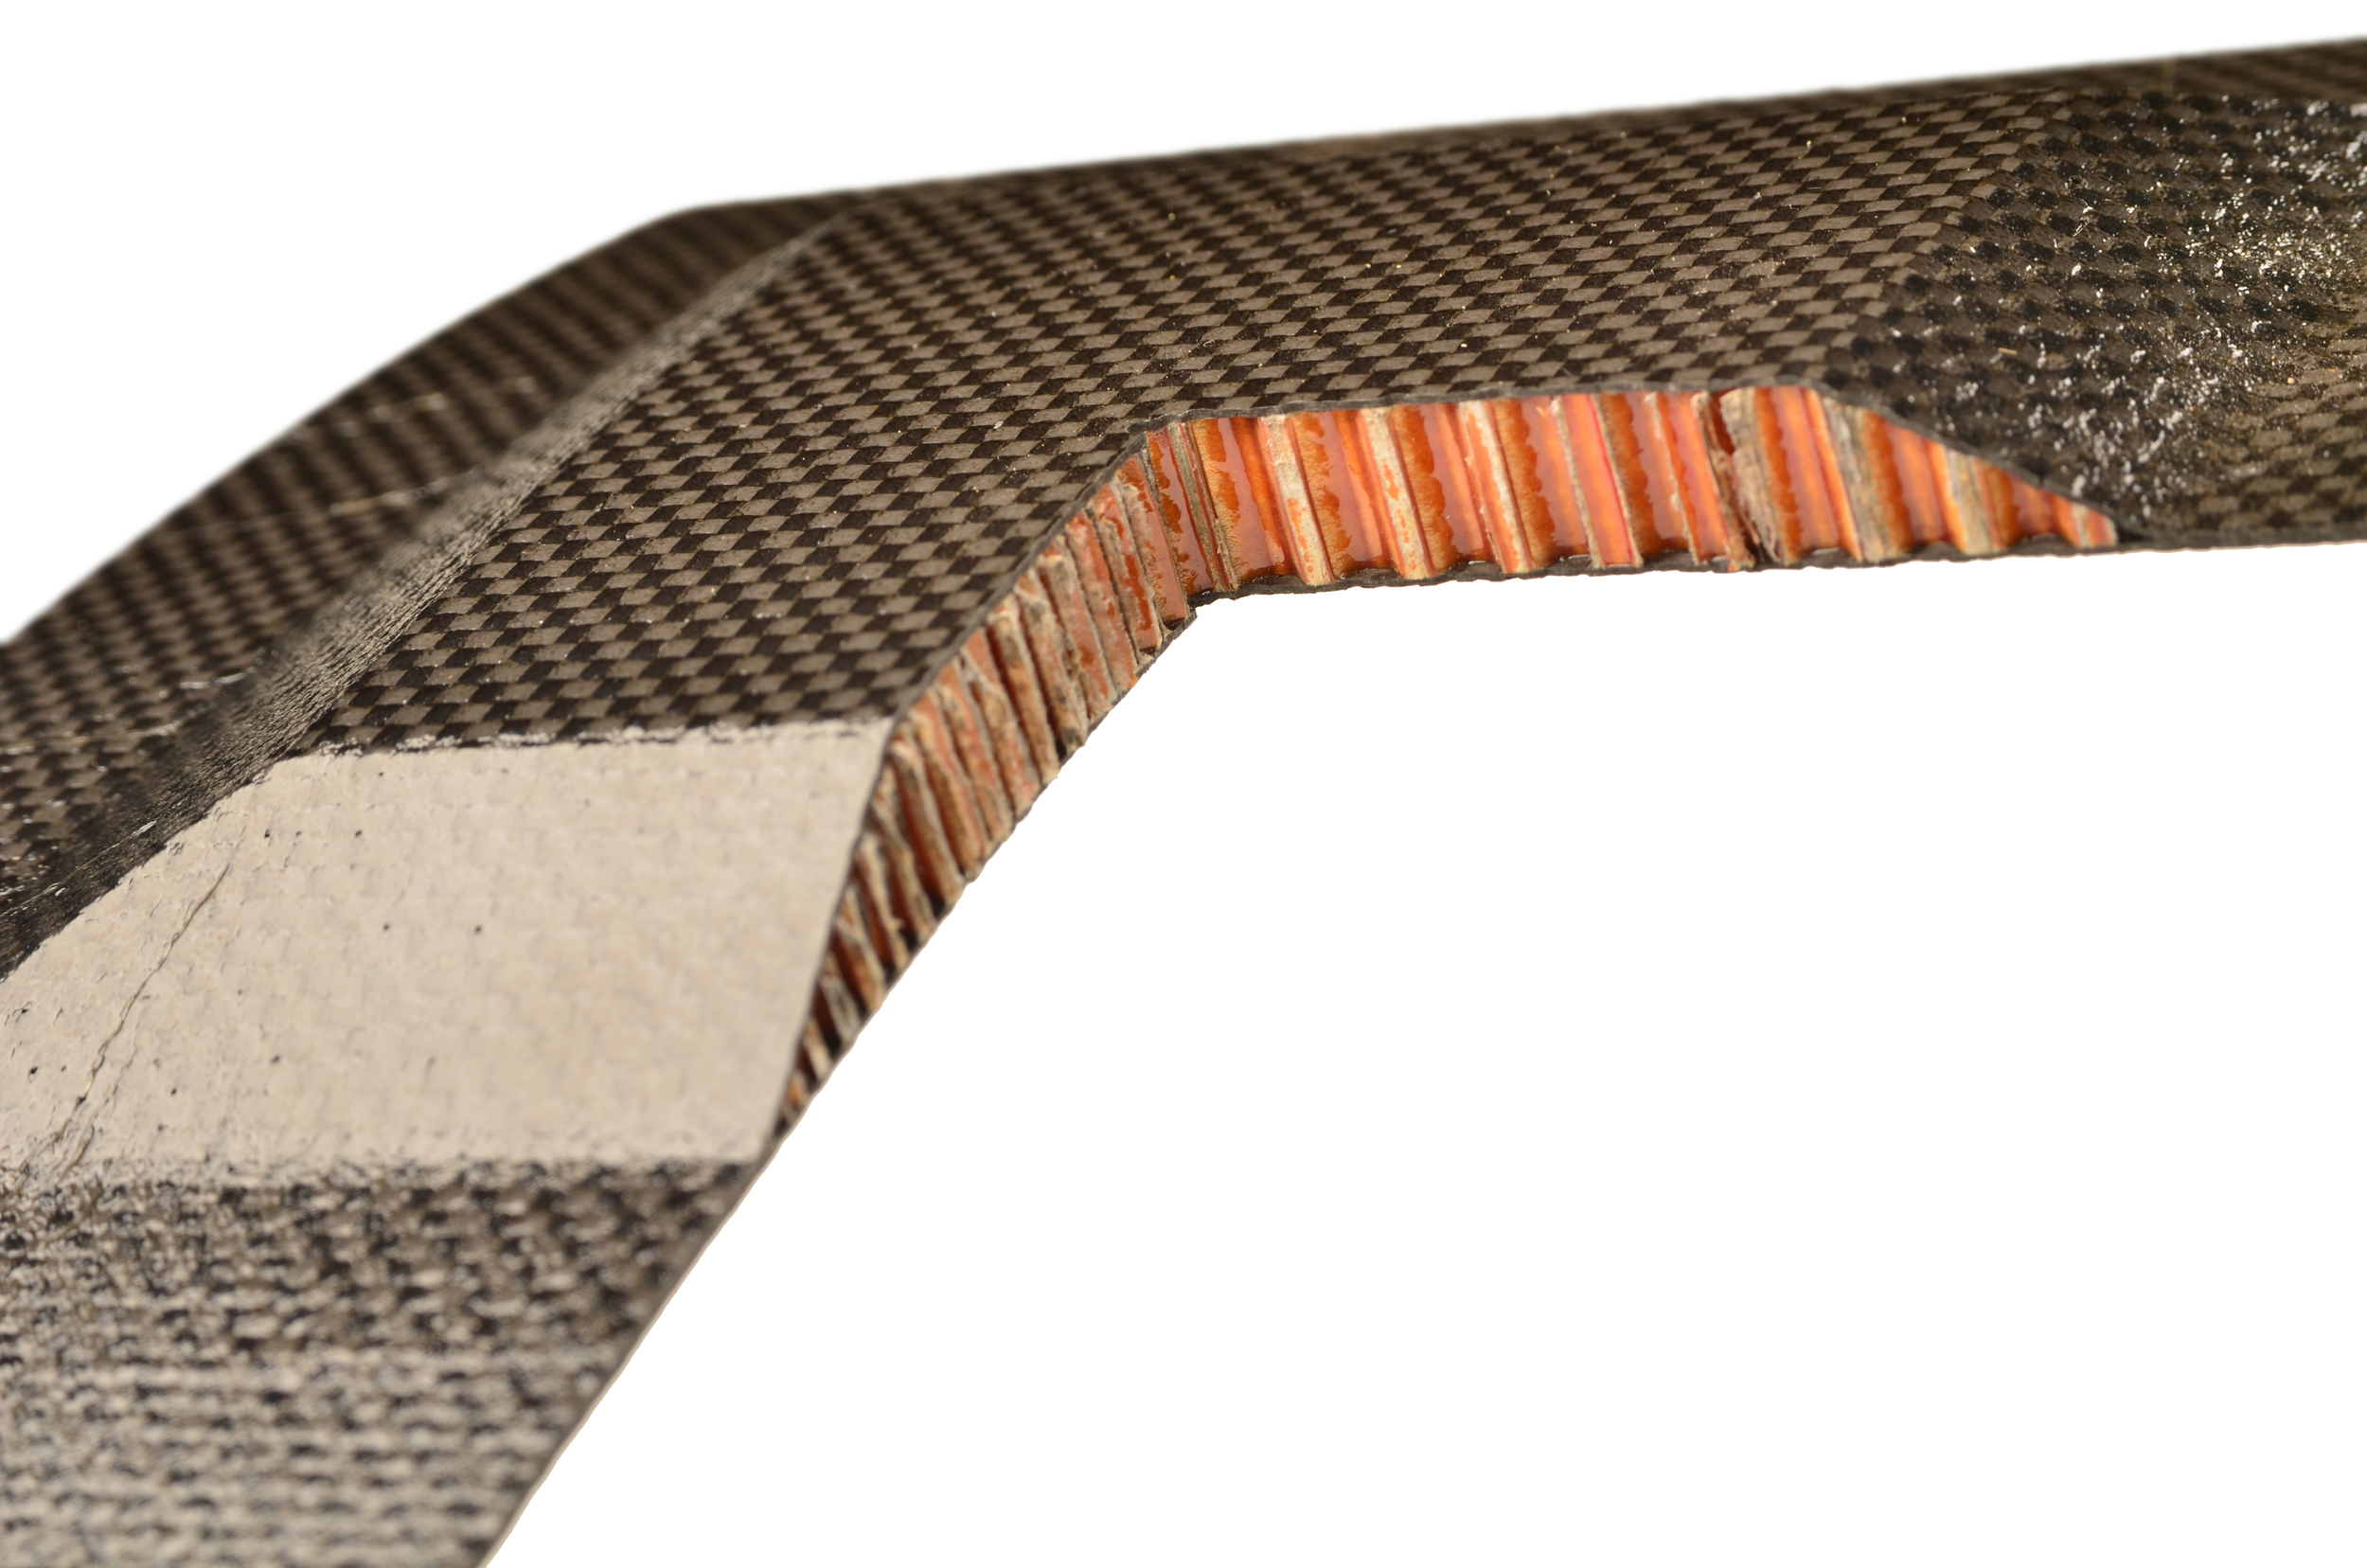 Honeycomb reinforced carbon fiber panel cut to show cross section